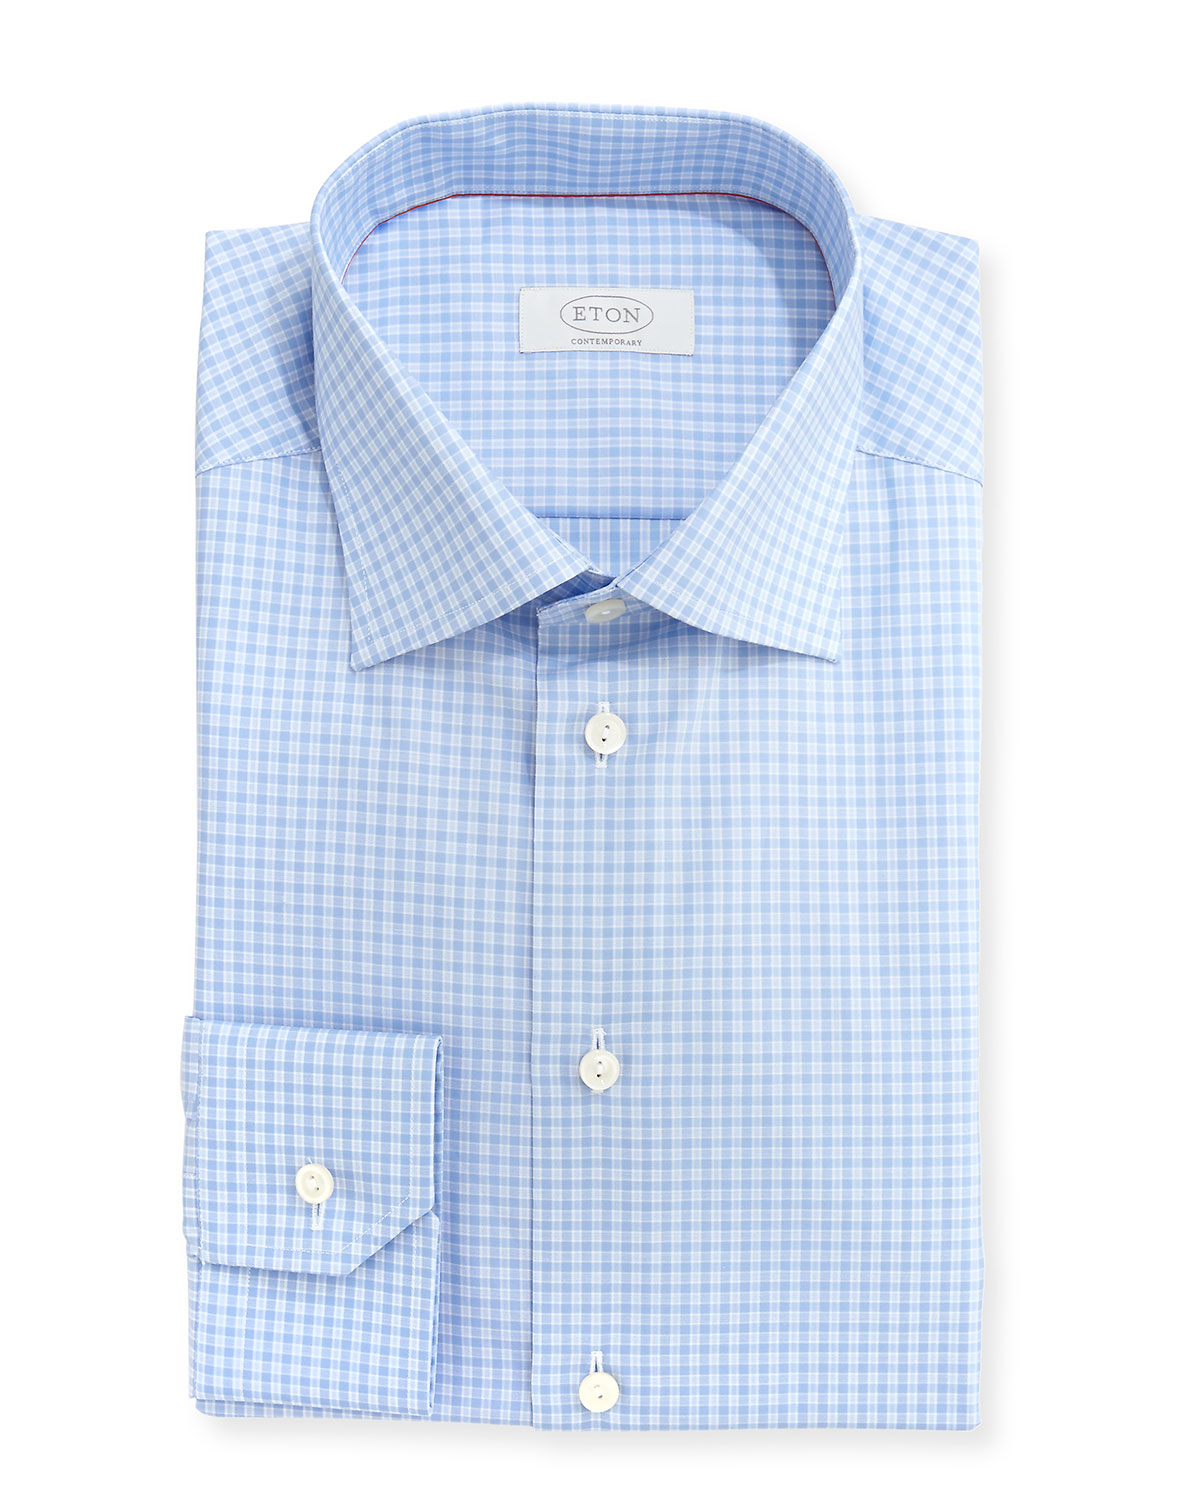 Eton Of Sweden Contemporary Fit Check Dress Shirt In Blue